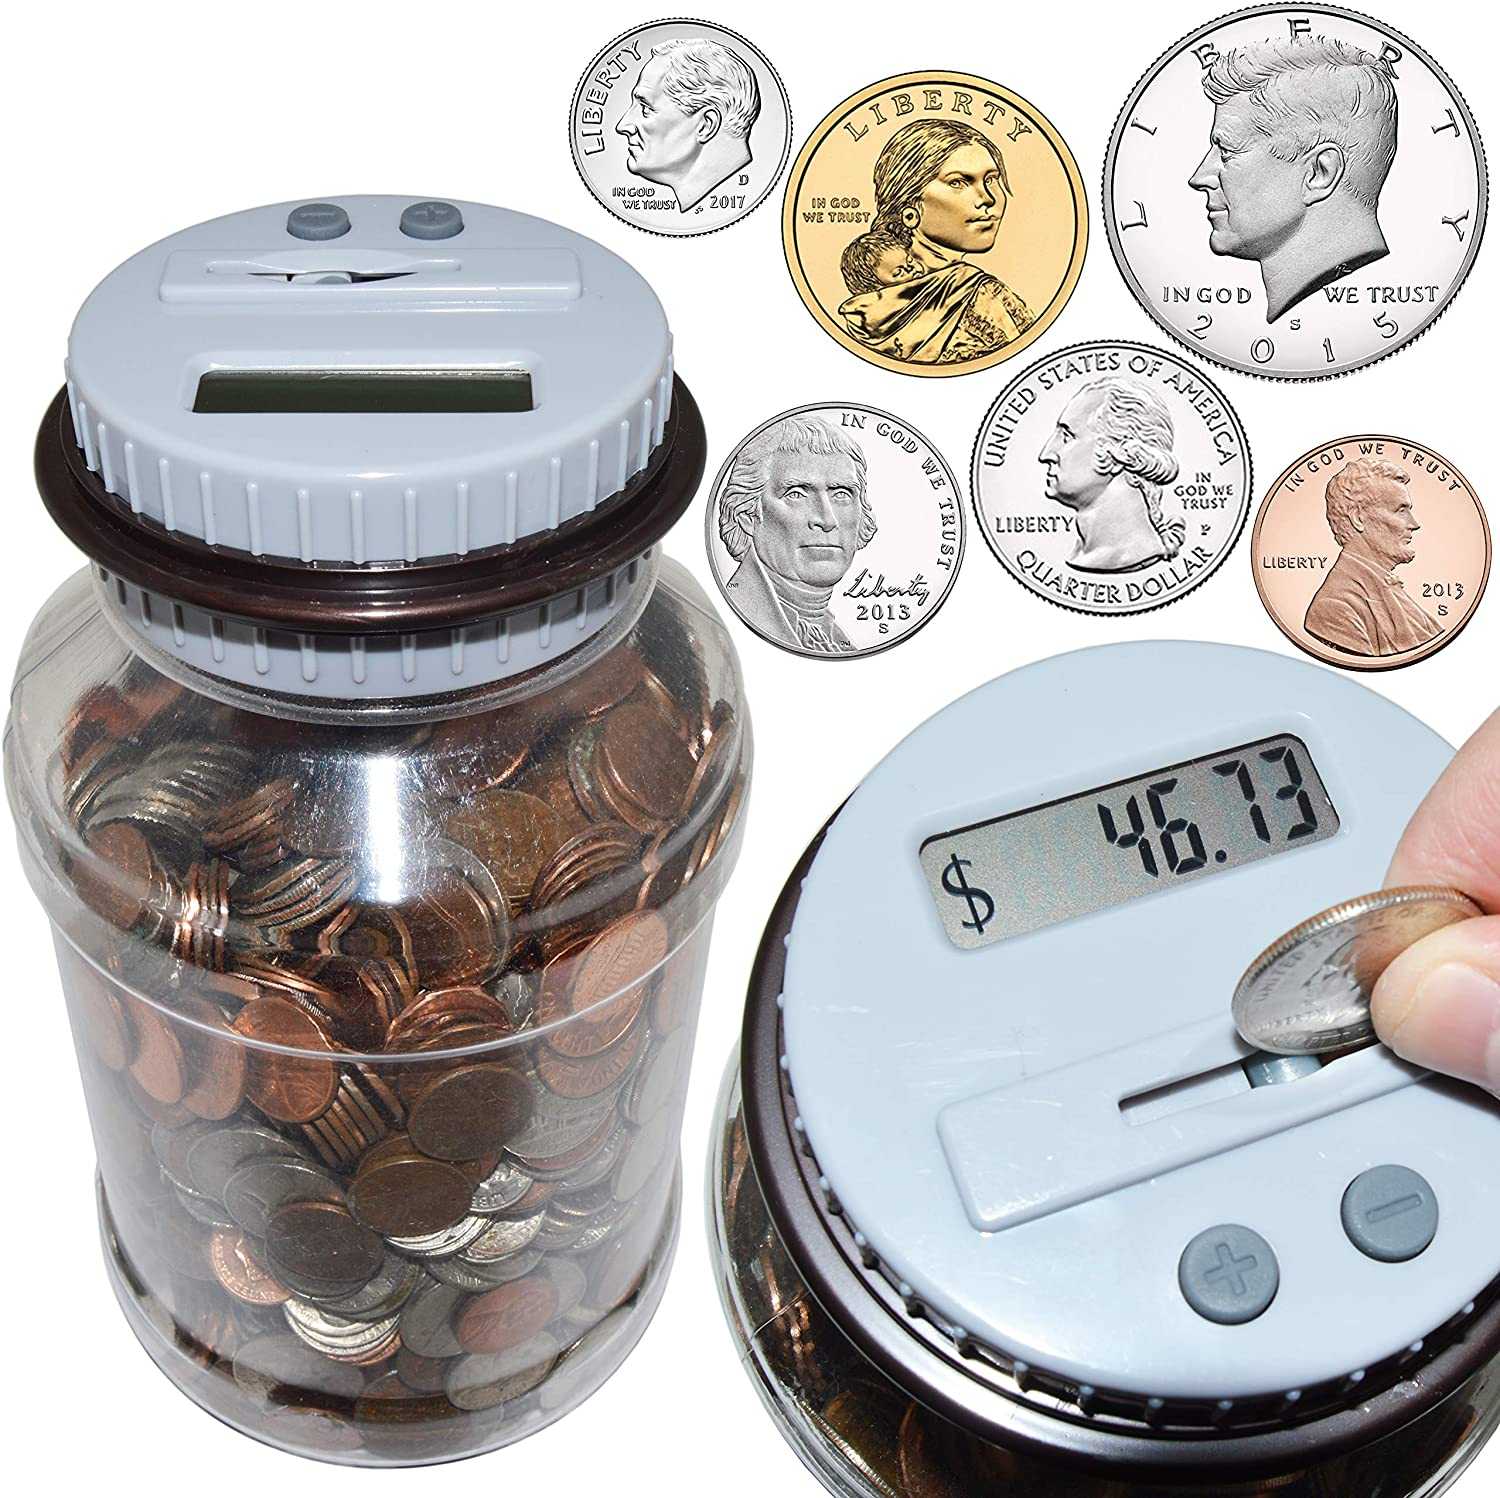 Digital Coin Counting Money Jar Bank - Accepts All US Coins from Pennies to Dollars - by SciencePurchase